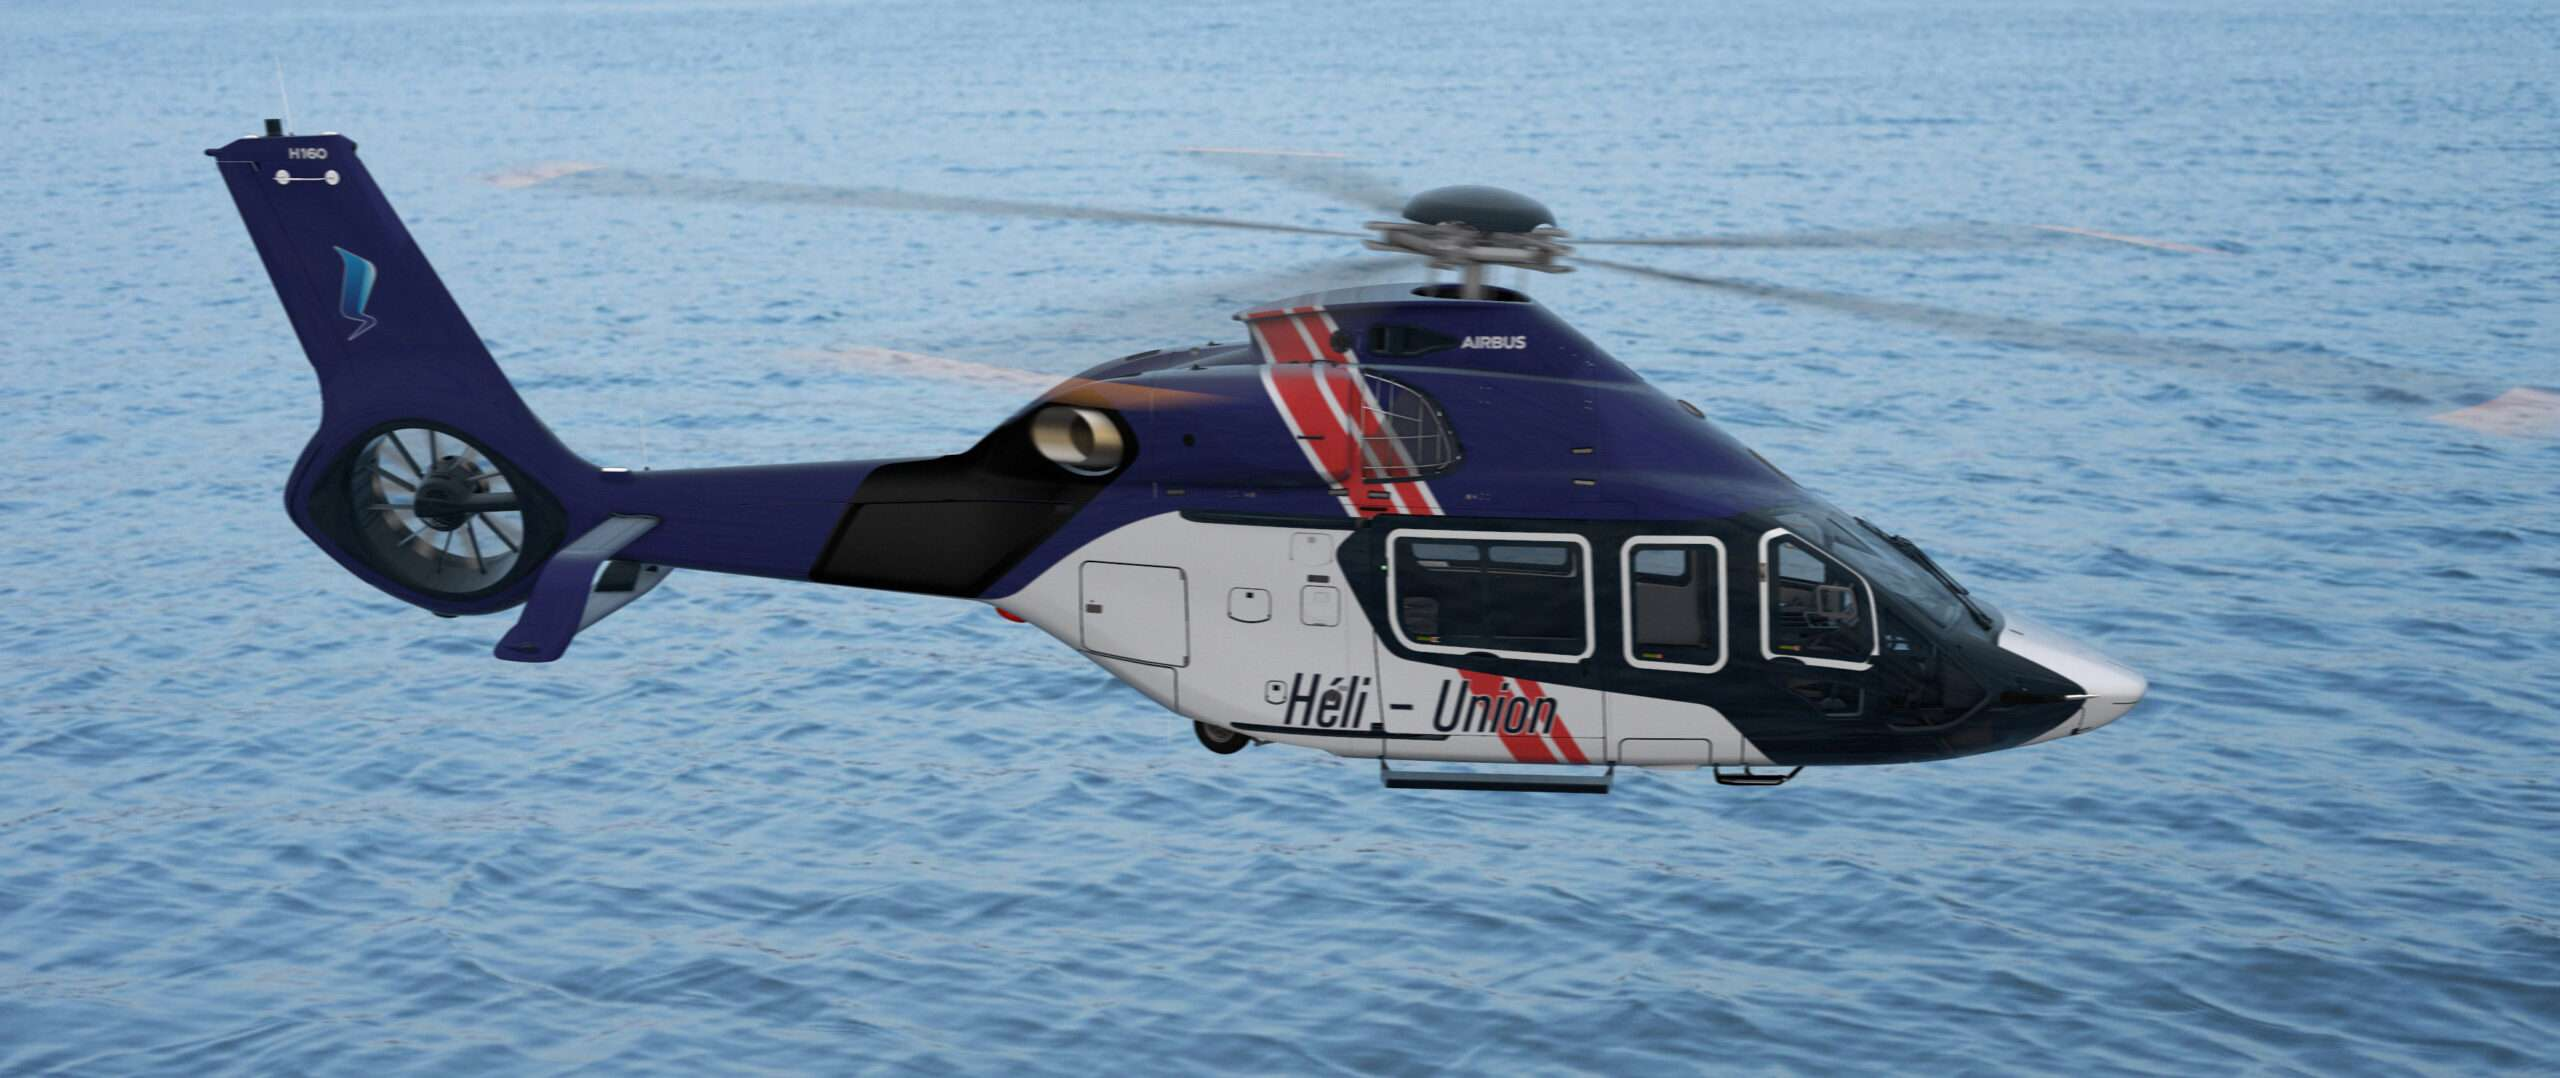 H160 helicopter